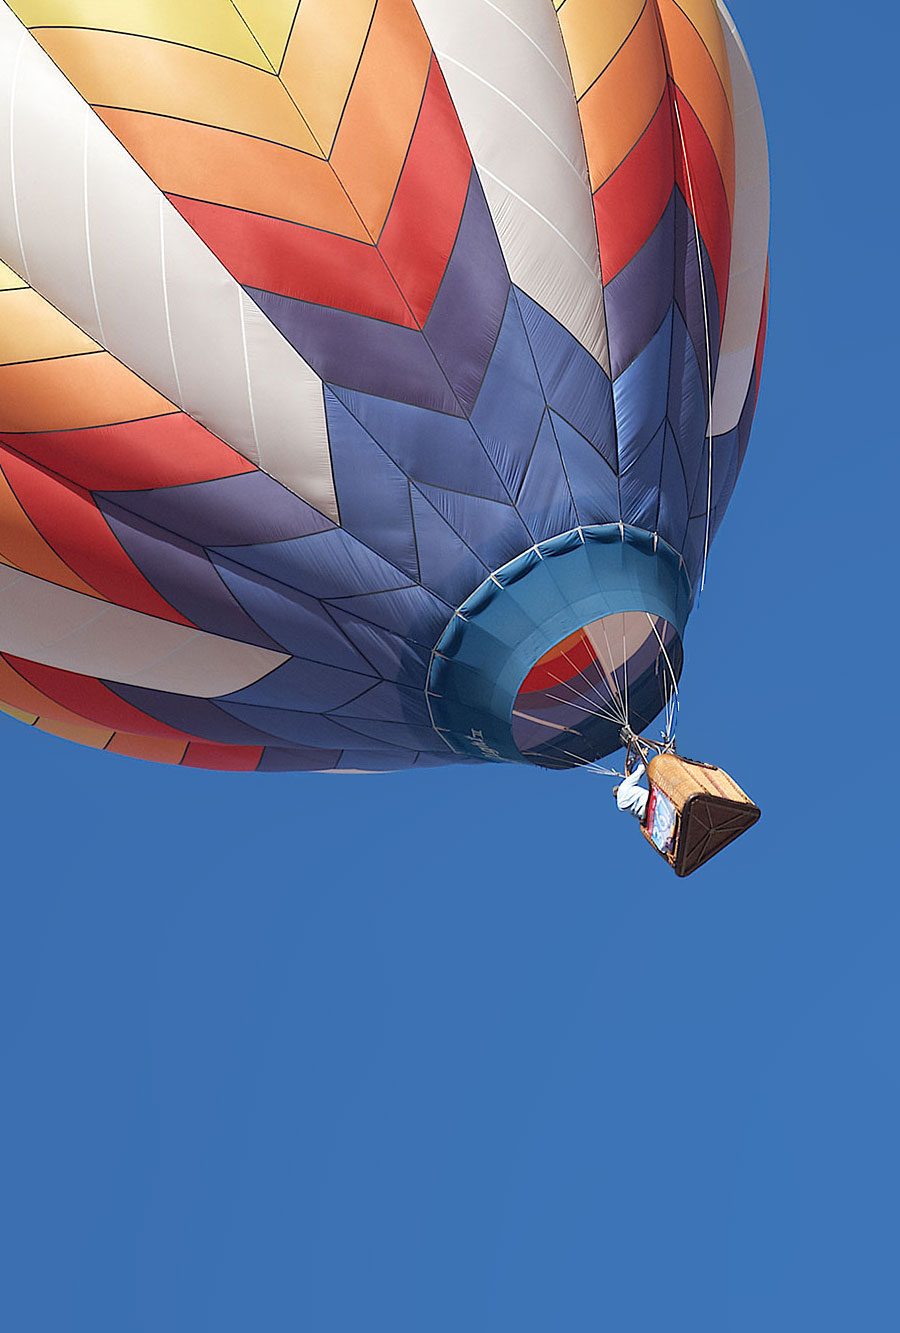 Albuquerque Balloon Fiesta Questions